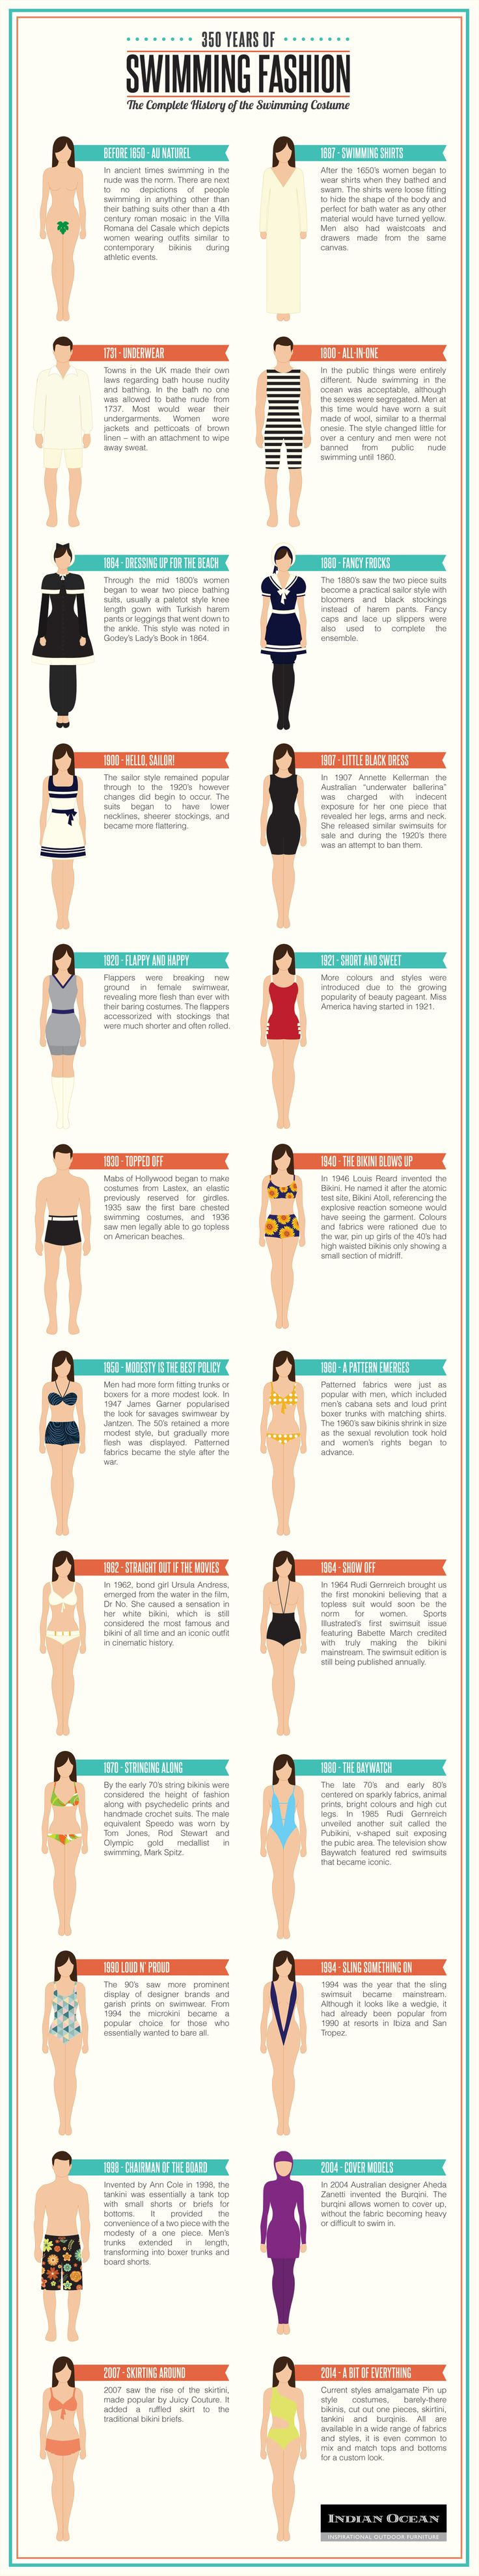 350 Years of Swimming Fashion   #infographic #Swimming #fashion